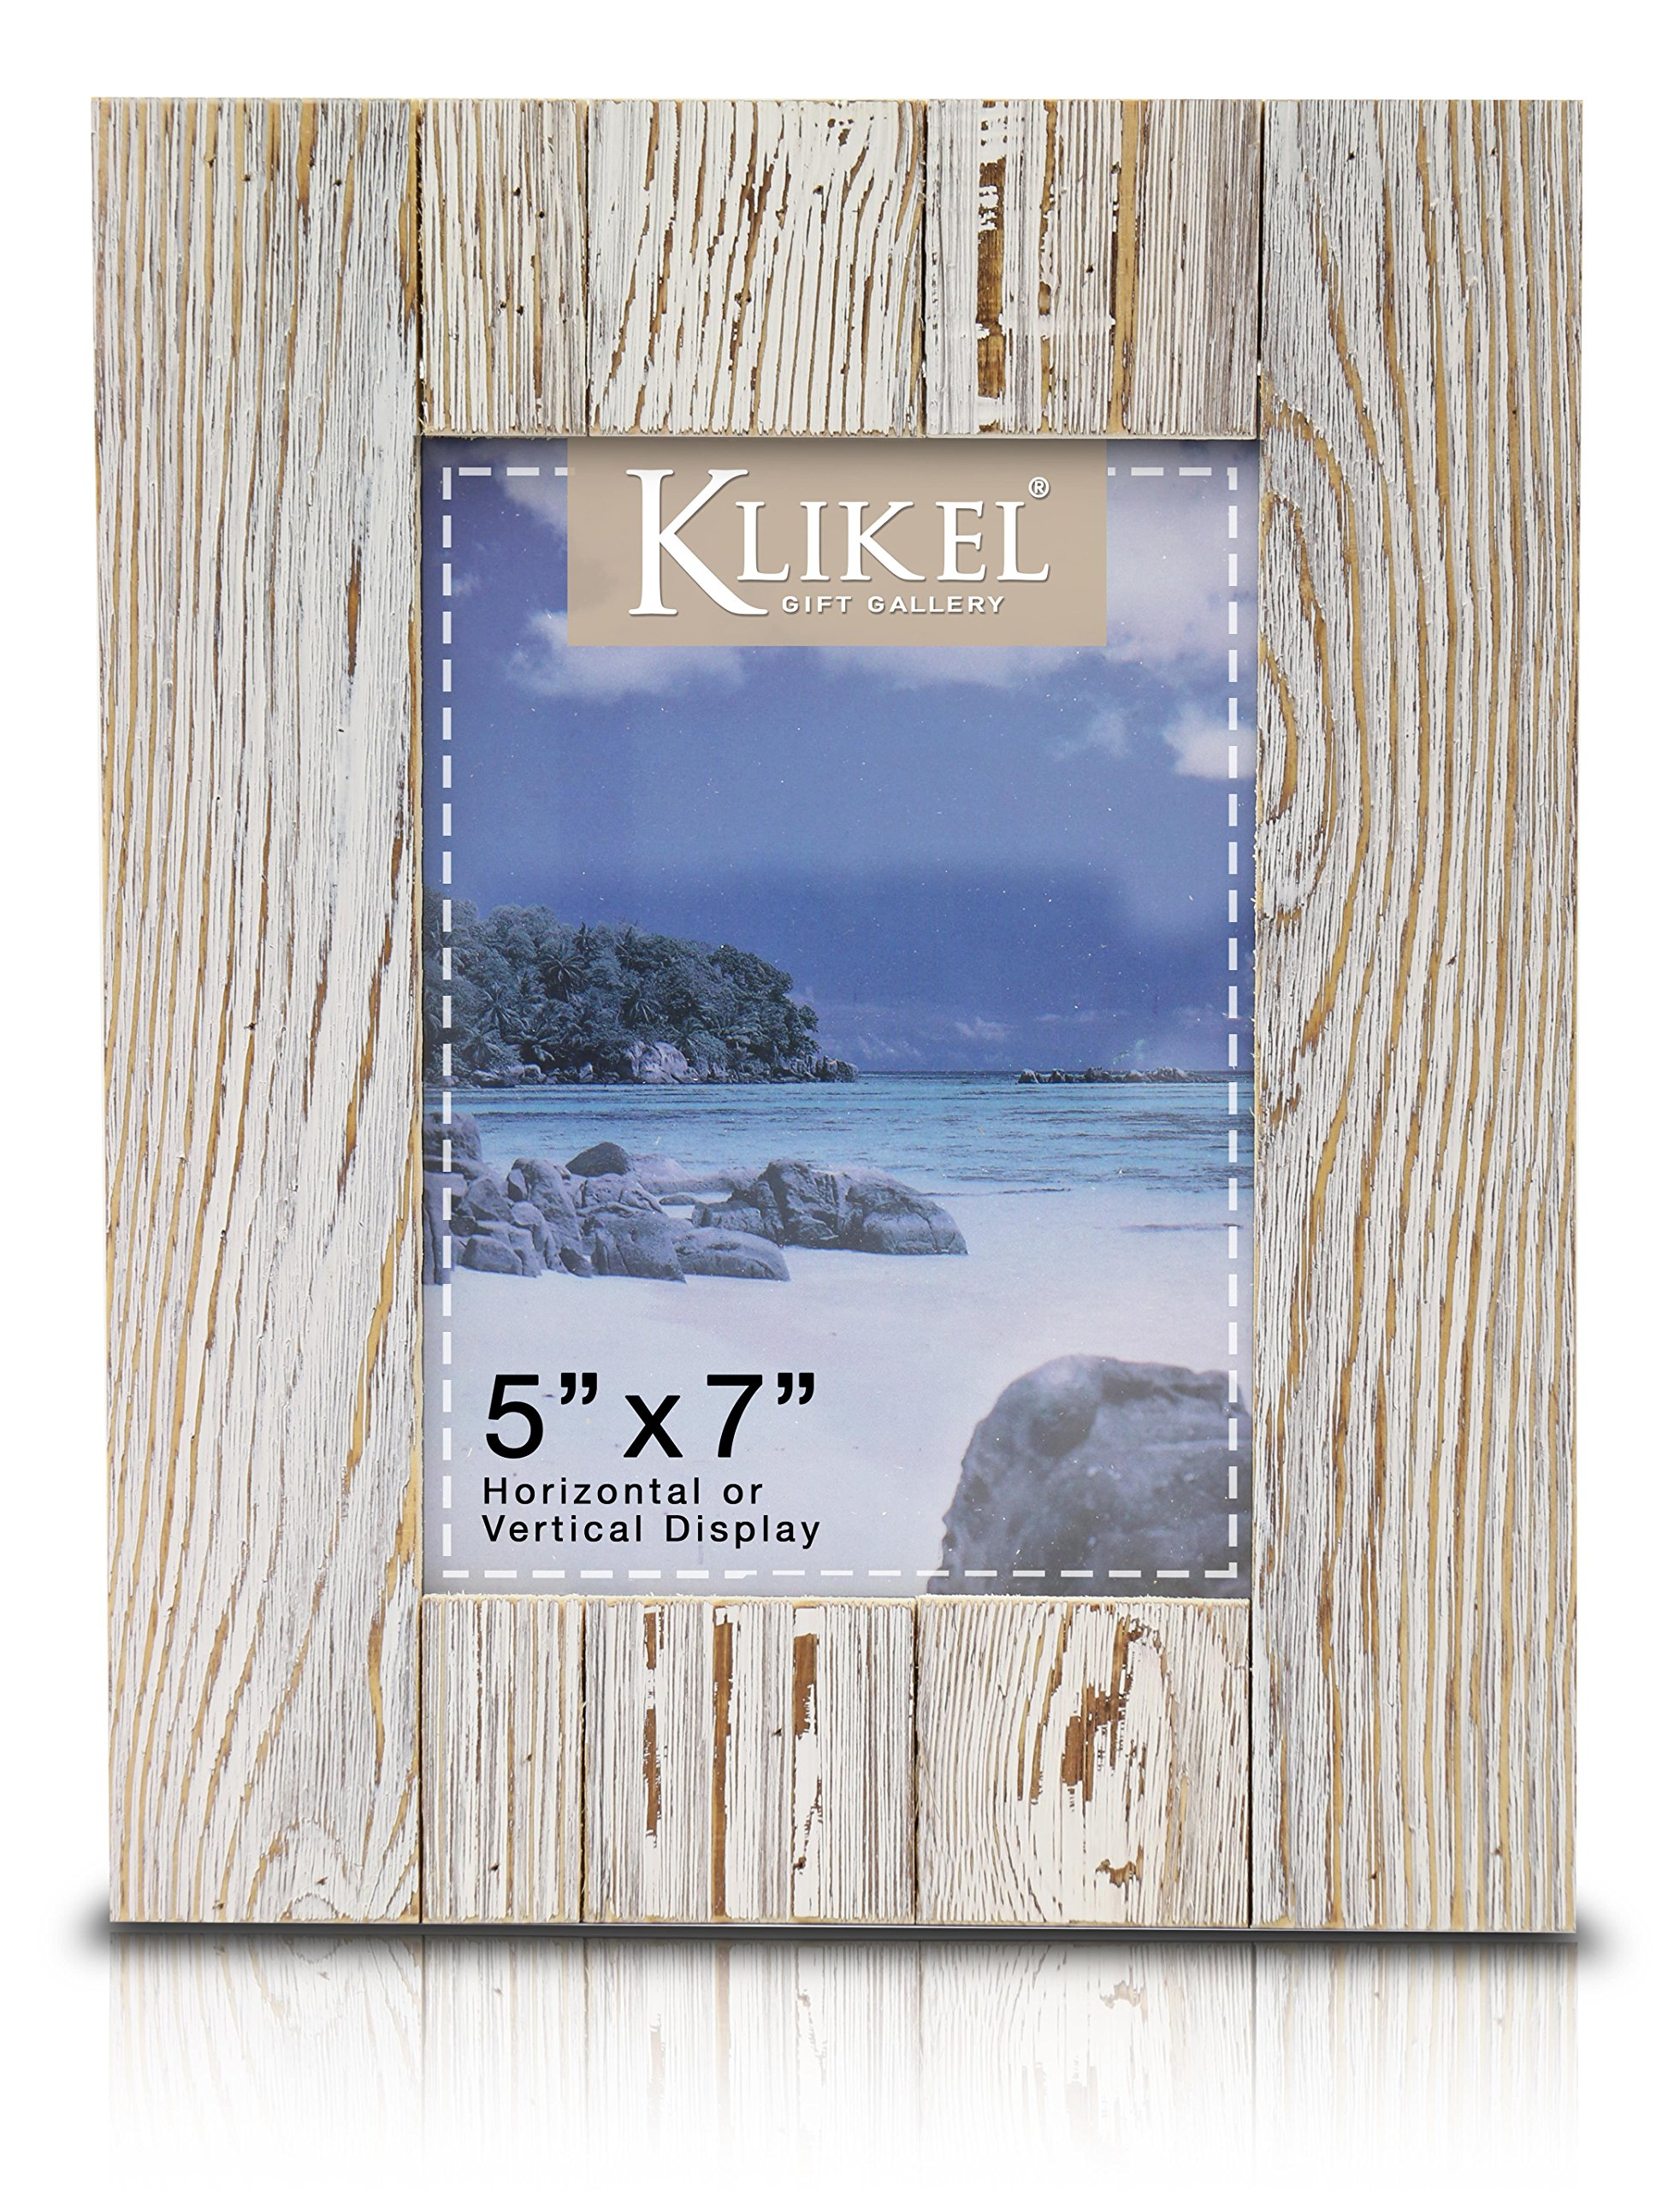 Klikel Distressed Wood 5 X 7 Picture Frame - White Solid Wooden Wall Hanging and Table Standing Photo Frame